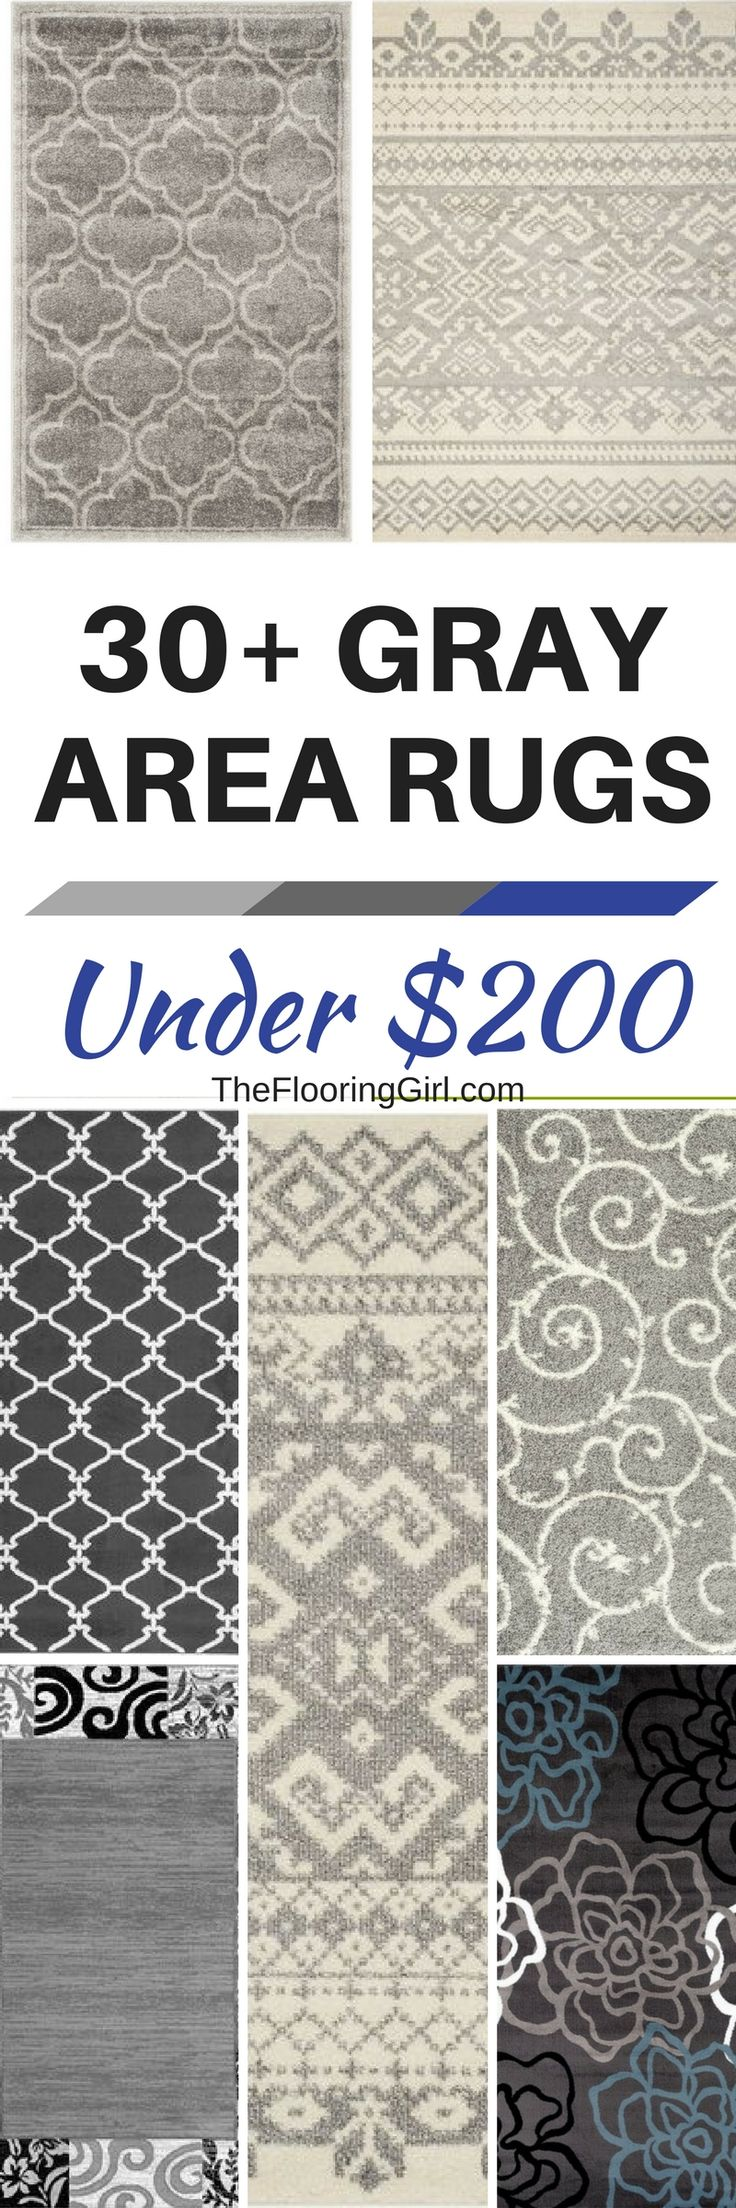 30+ Gray Area Rugs For Under $200. Where To Buy Inexpensive And Affordable  Gray